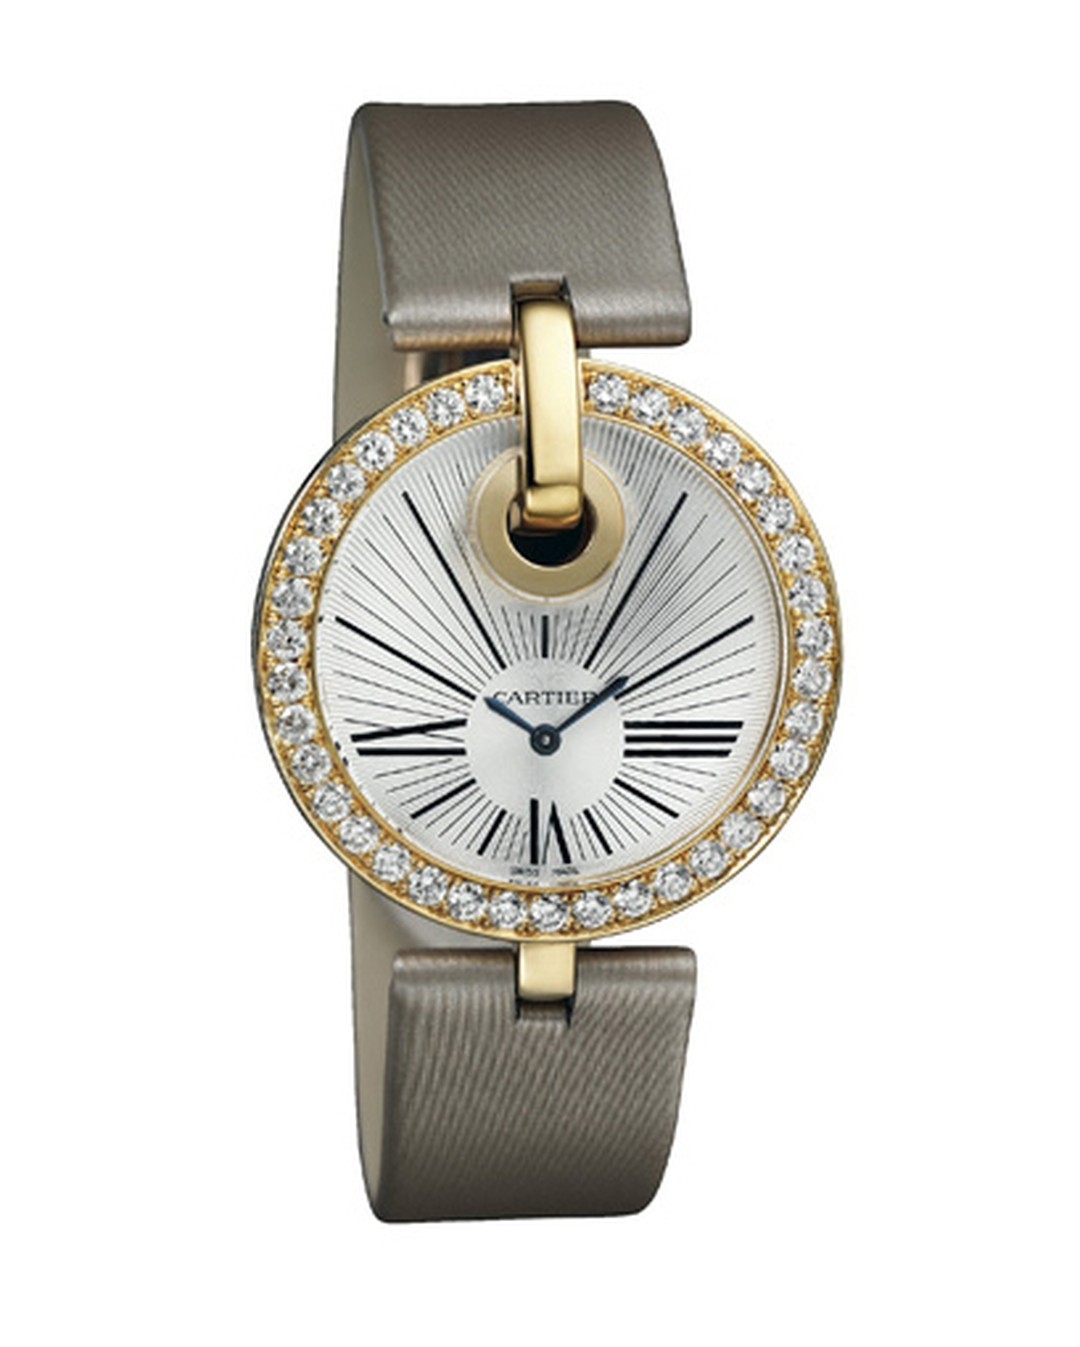 Cartier. Captive de Cartier watch. LM model 35mm, diamonds and yellow gold. Price from £24,000.jpg